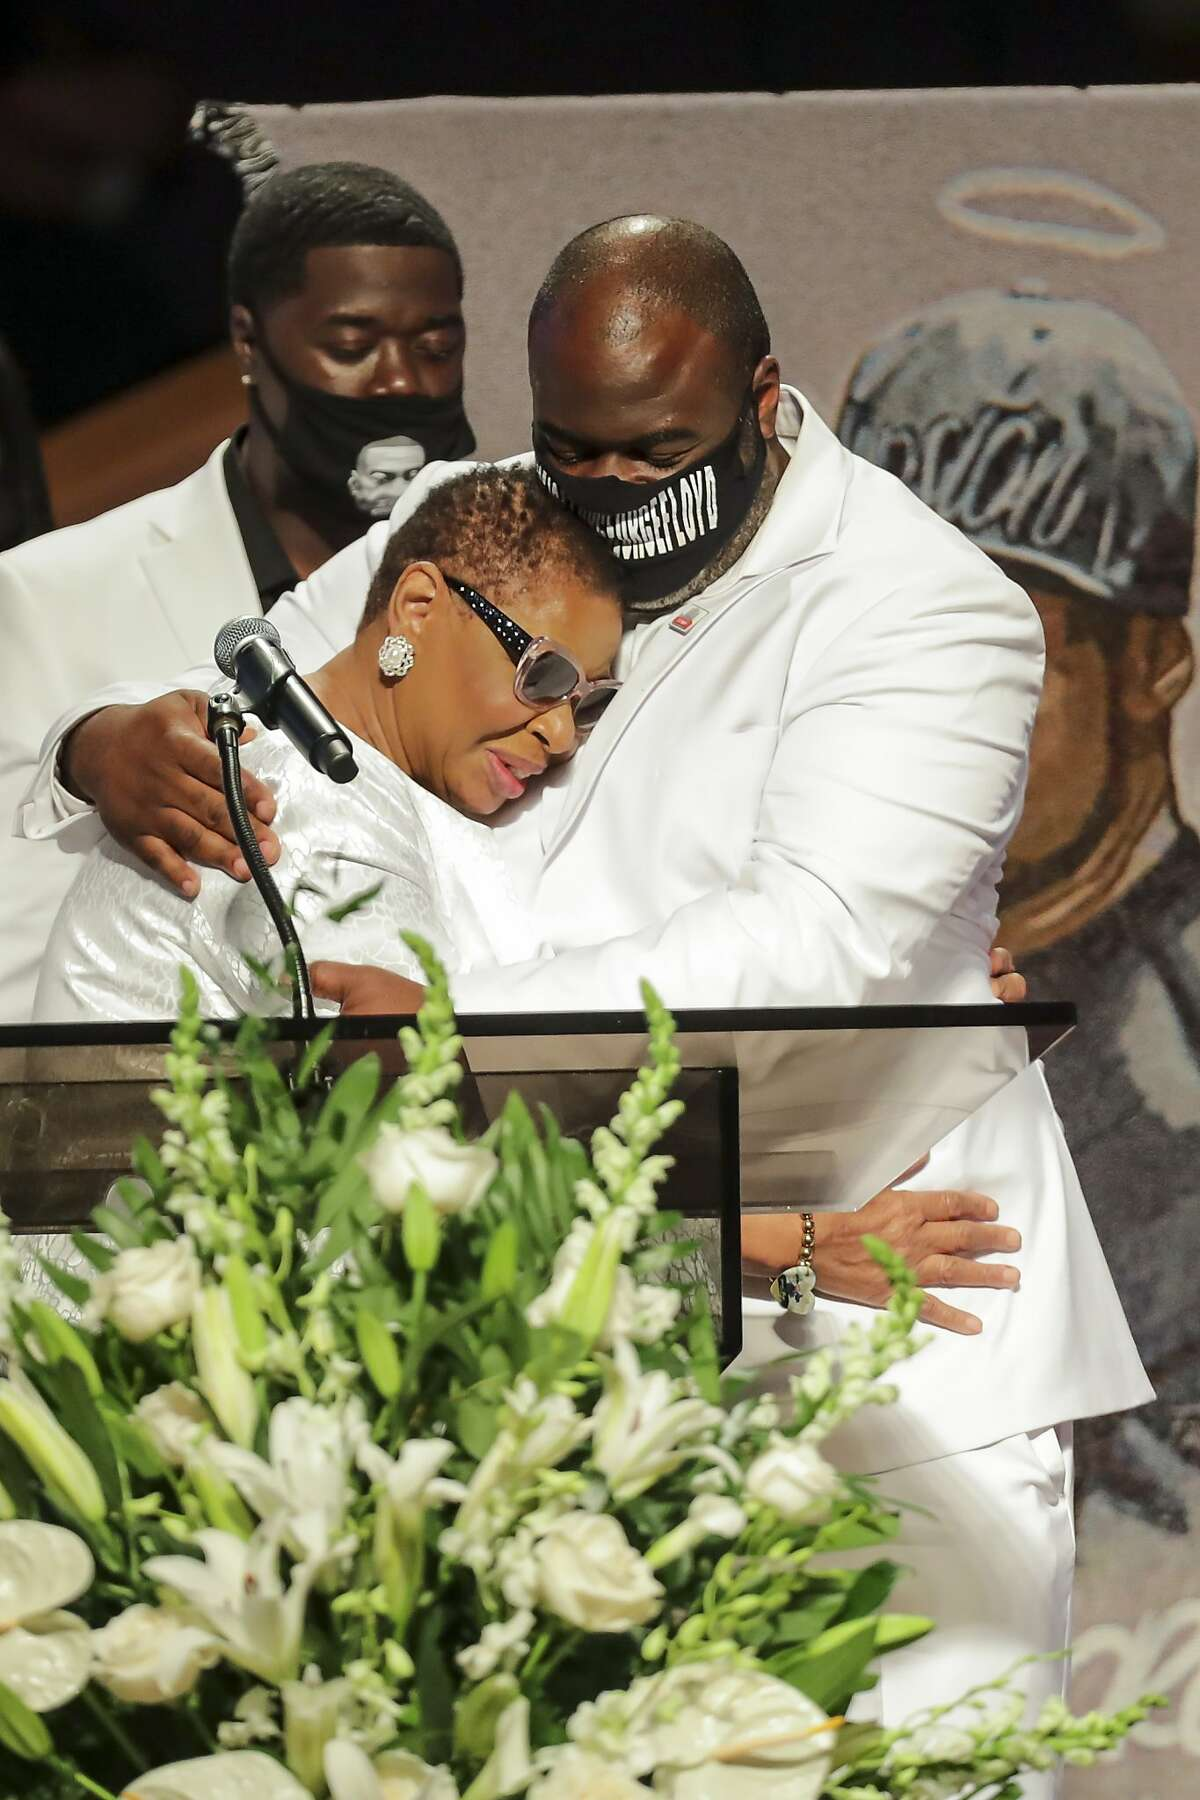 Rodney Floyd hugs his aunt as the family speaks during the funeral for Floyd's brother, George Floyd, on Tuesday, June 9, 2020, at The Fountain of Praise church in Houston. Floyd died after being restrained by Minneapolis Police officers on May 25.